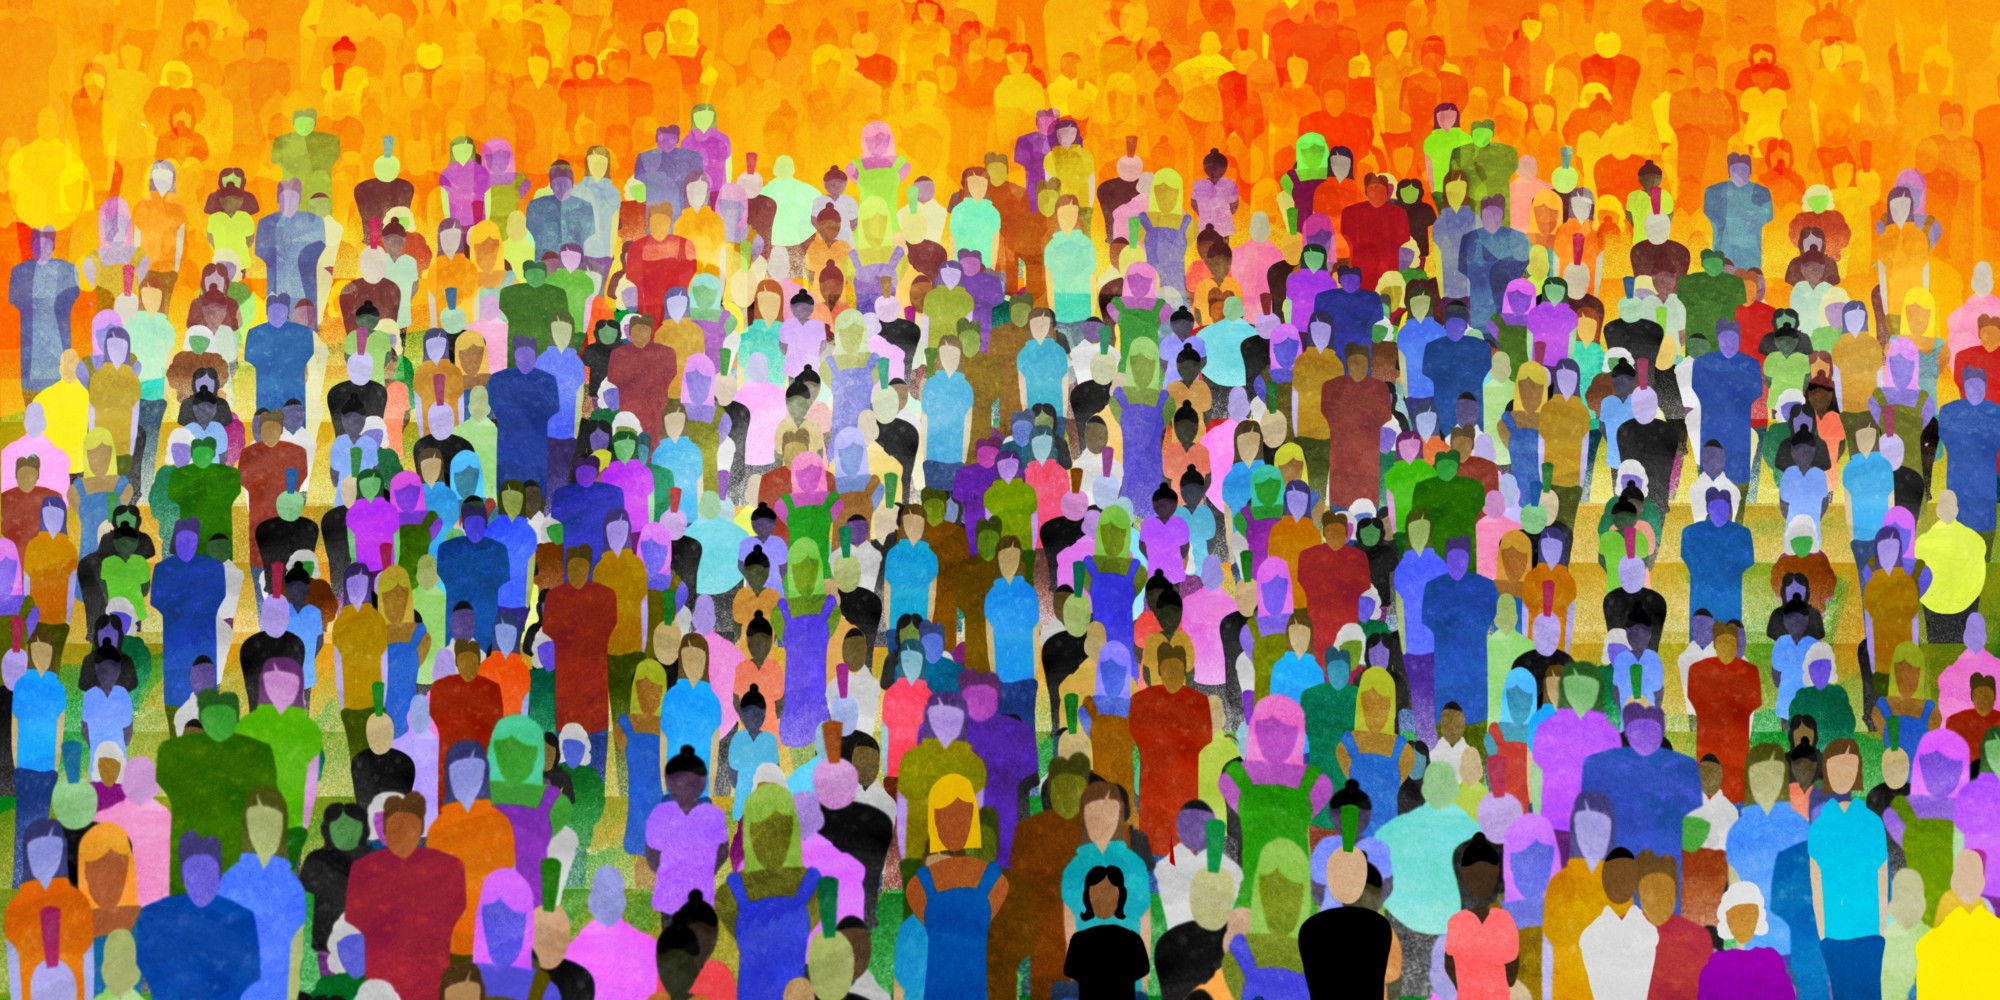 Illustration of people in a crowd